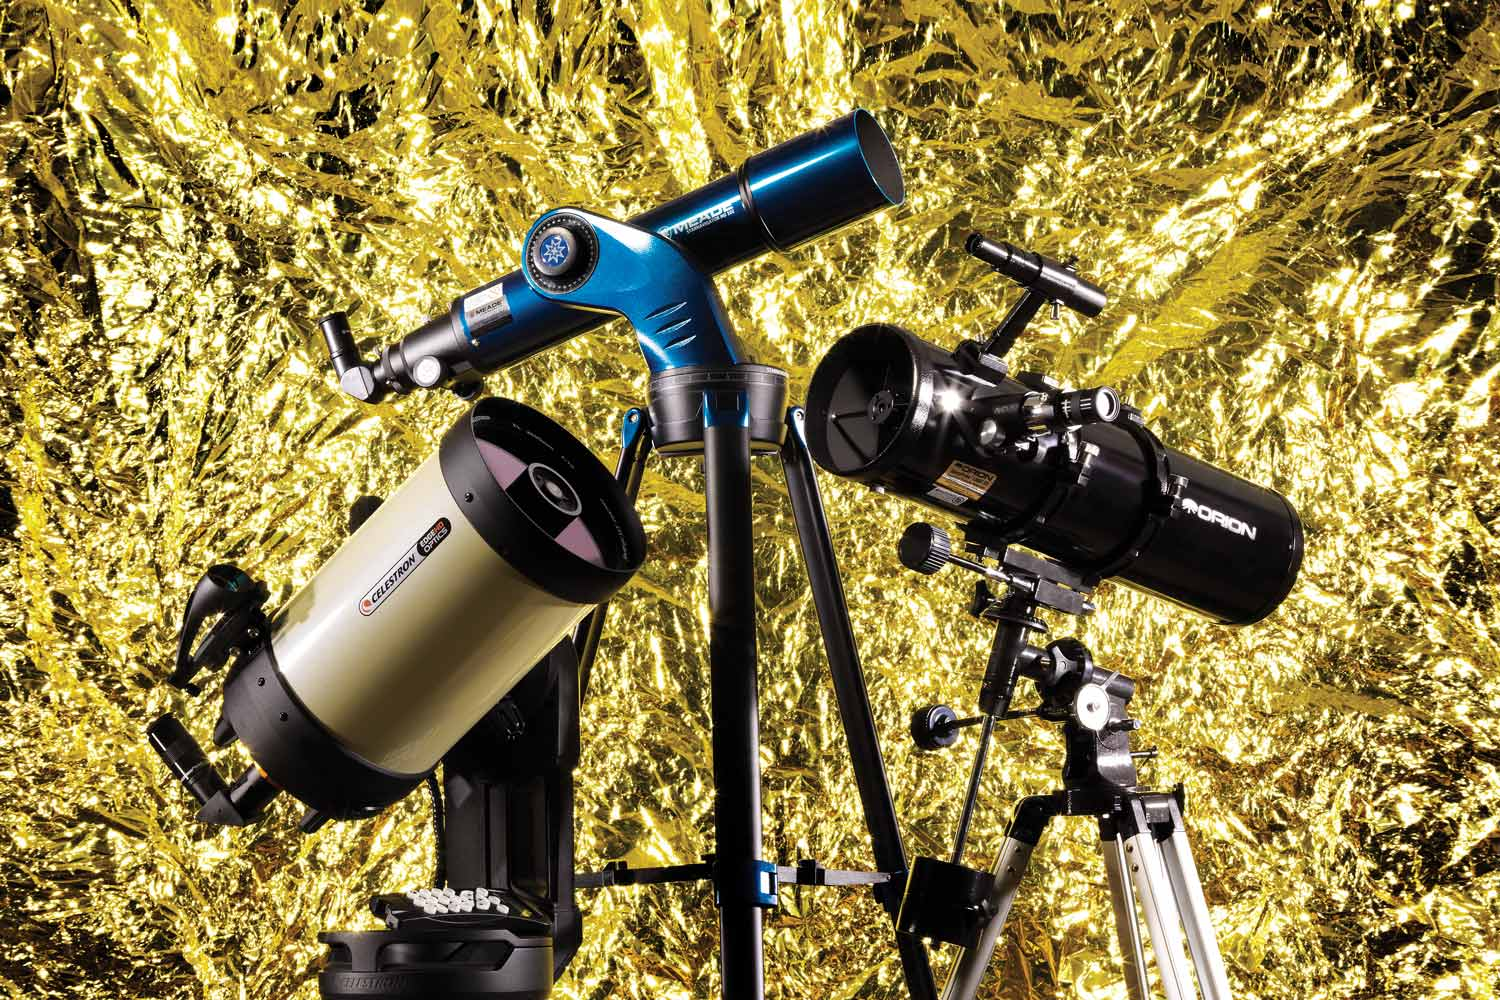 Clear-as-day telescopes for watching the night sky